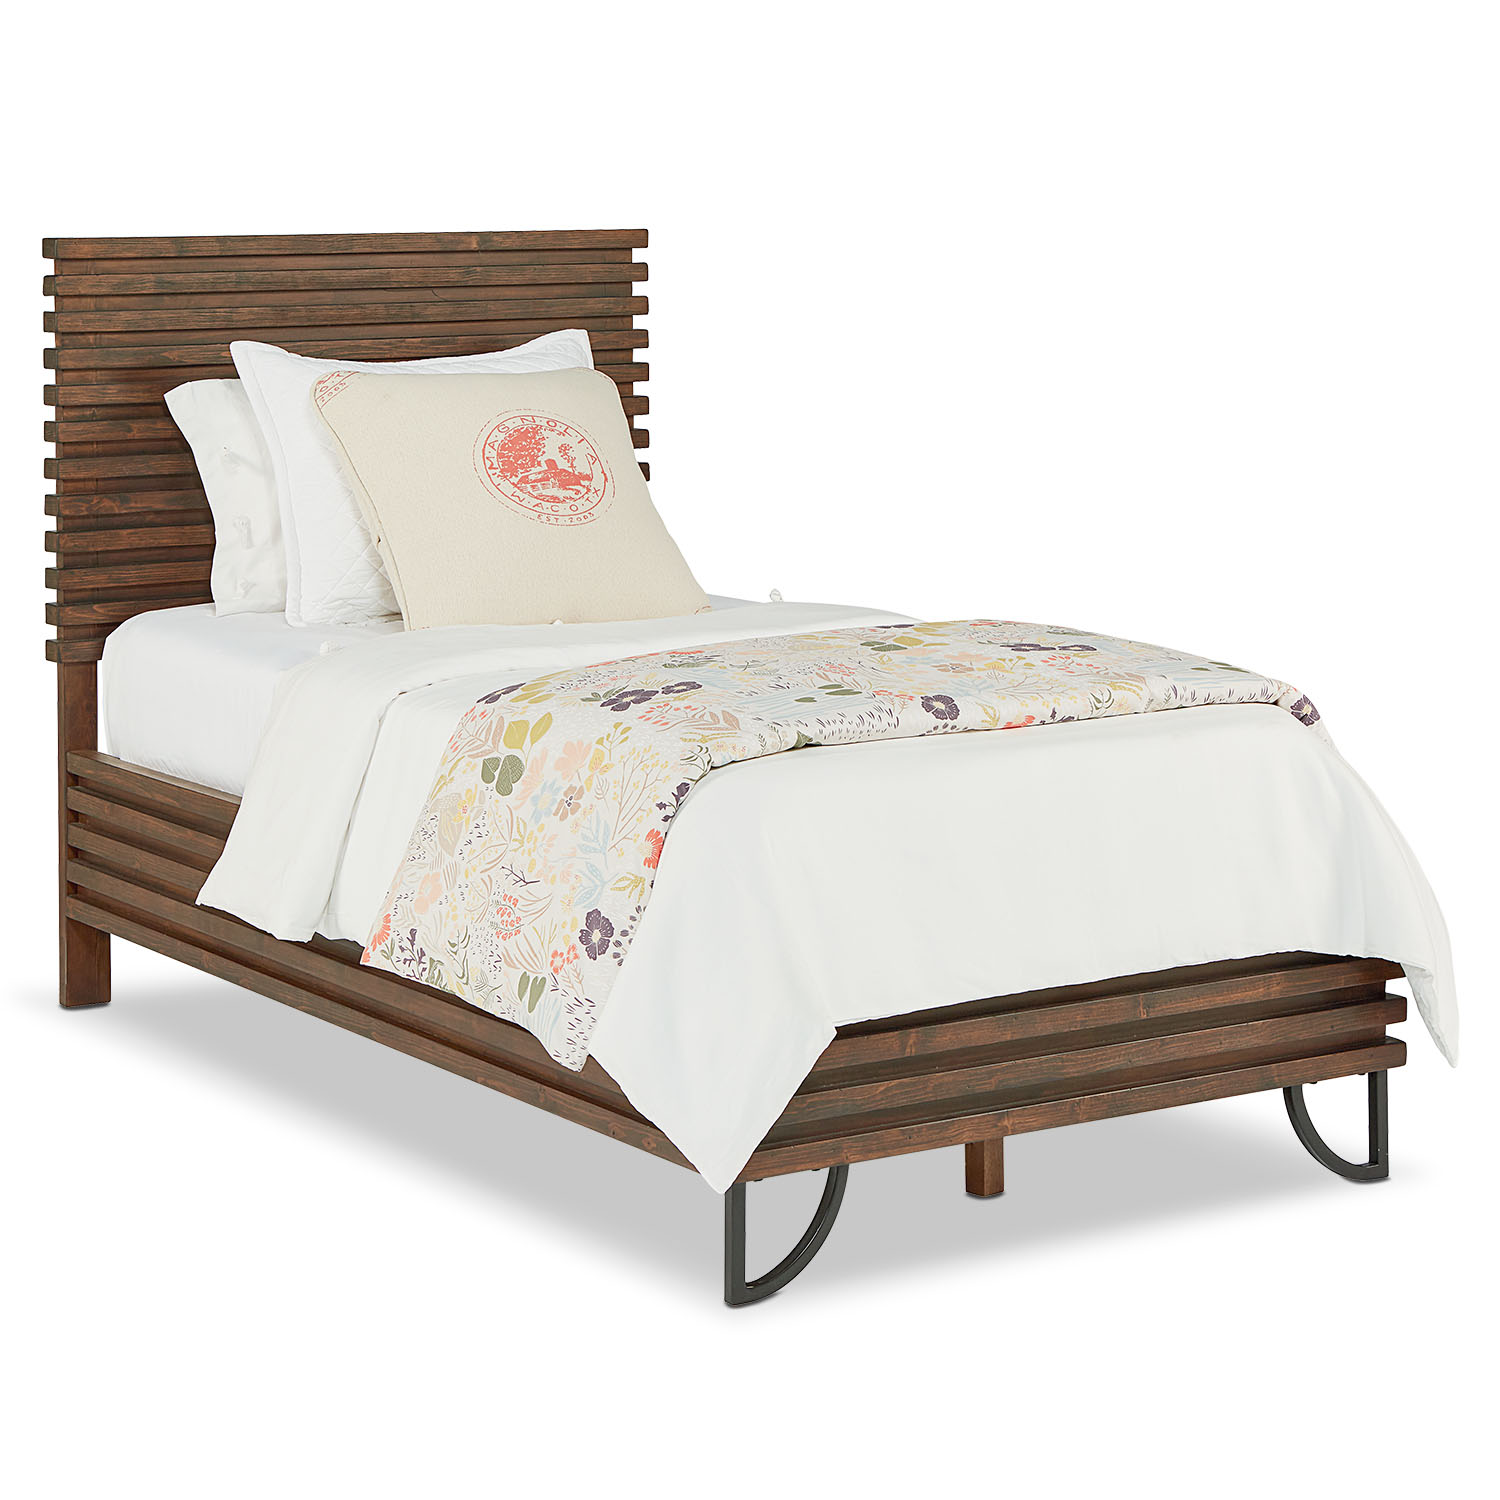 Bedroom Furniture - Full Stacked Slat Bed